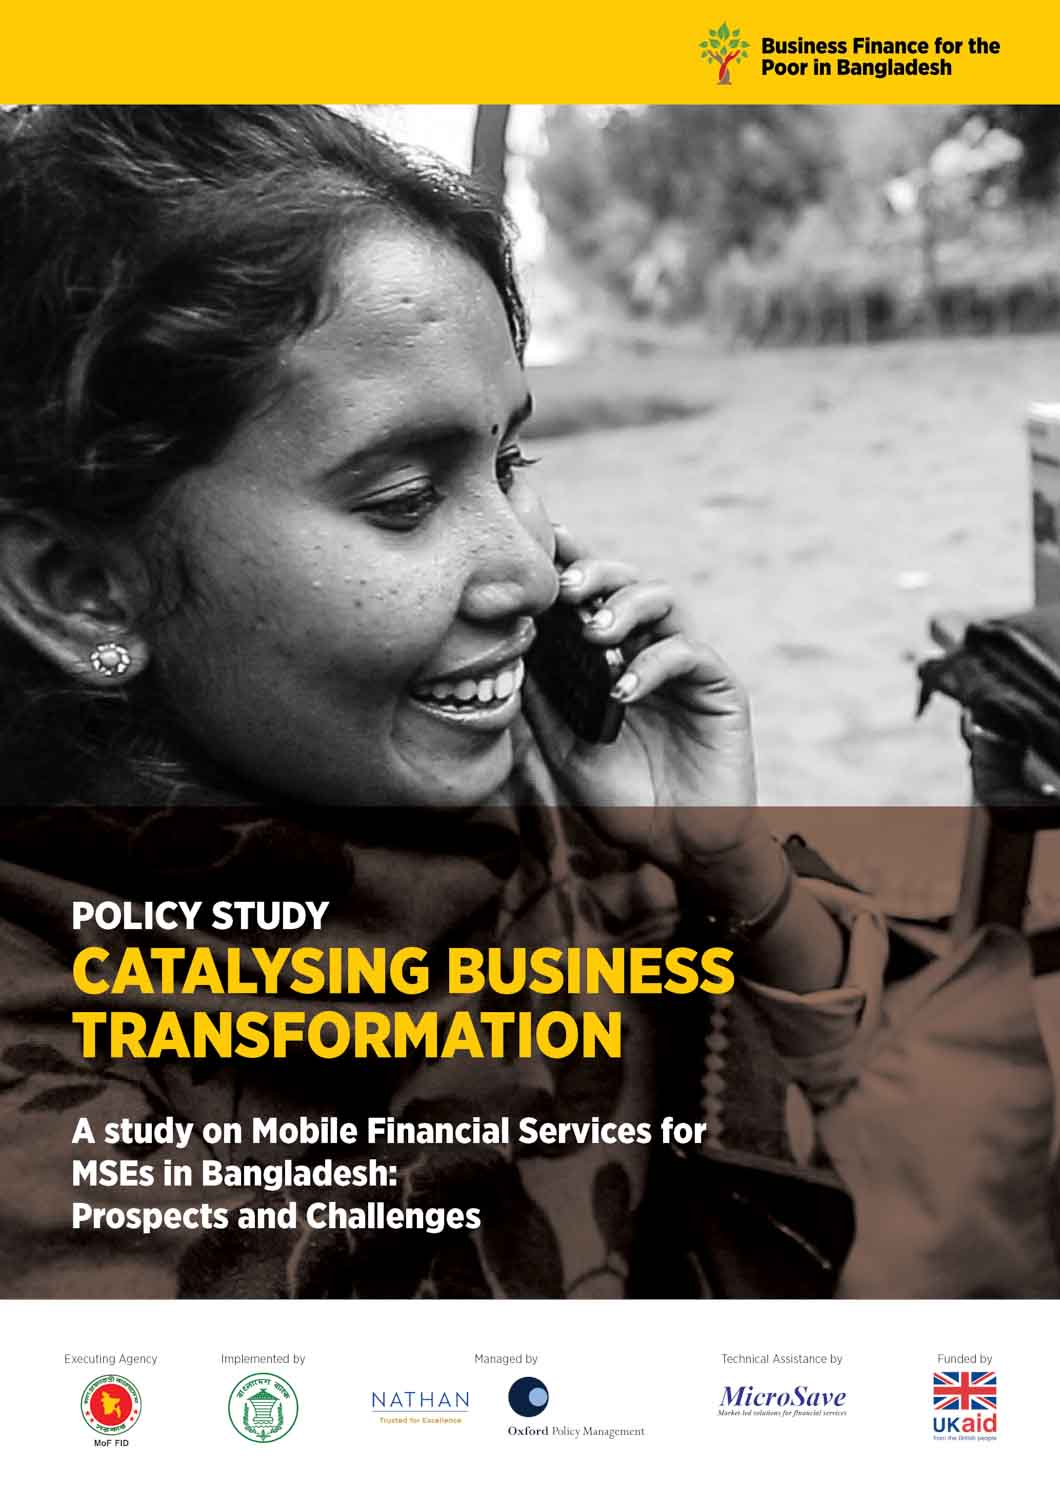 BFP-B policy study mobile financial services